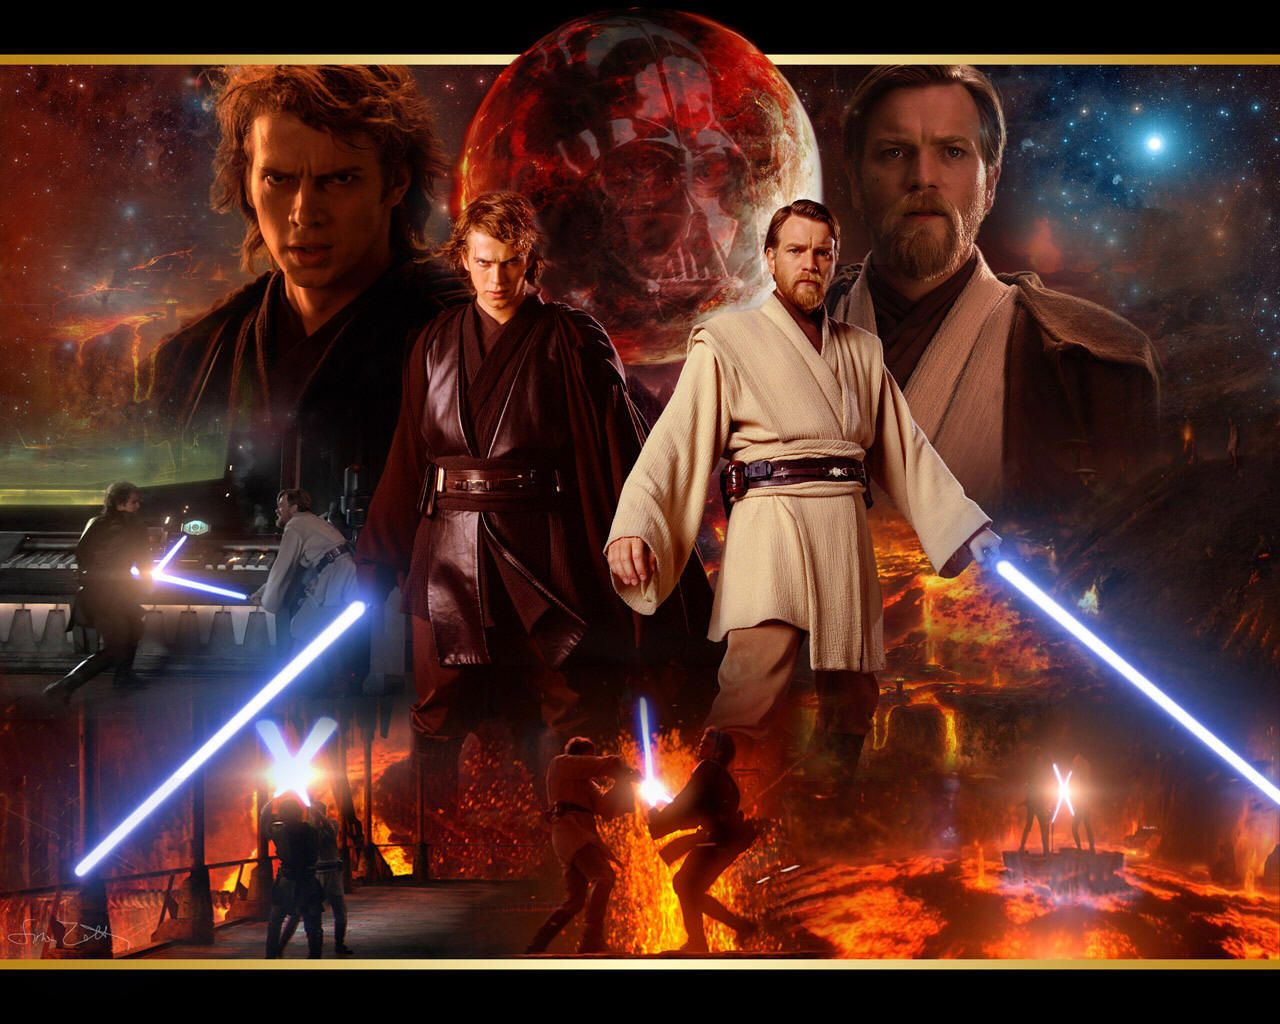 Star Wars Revenge Of The Sith Greatest Work Of Art Star Wars Ii Star Wars Movies Posters Star Wars Episodes